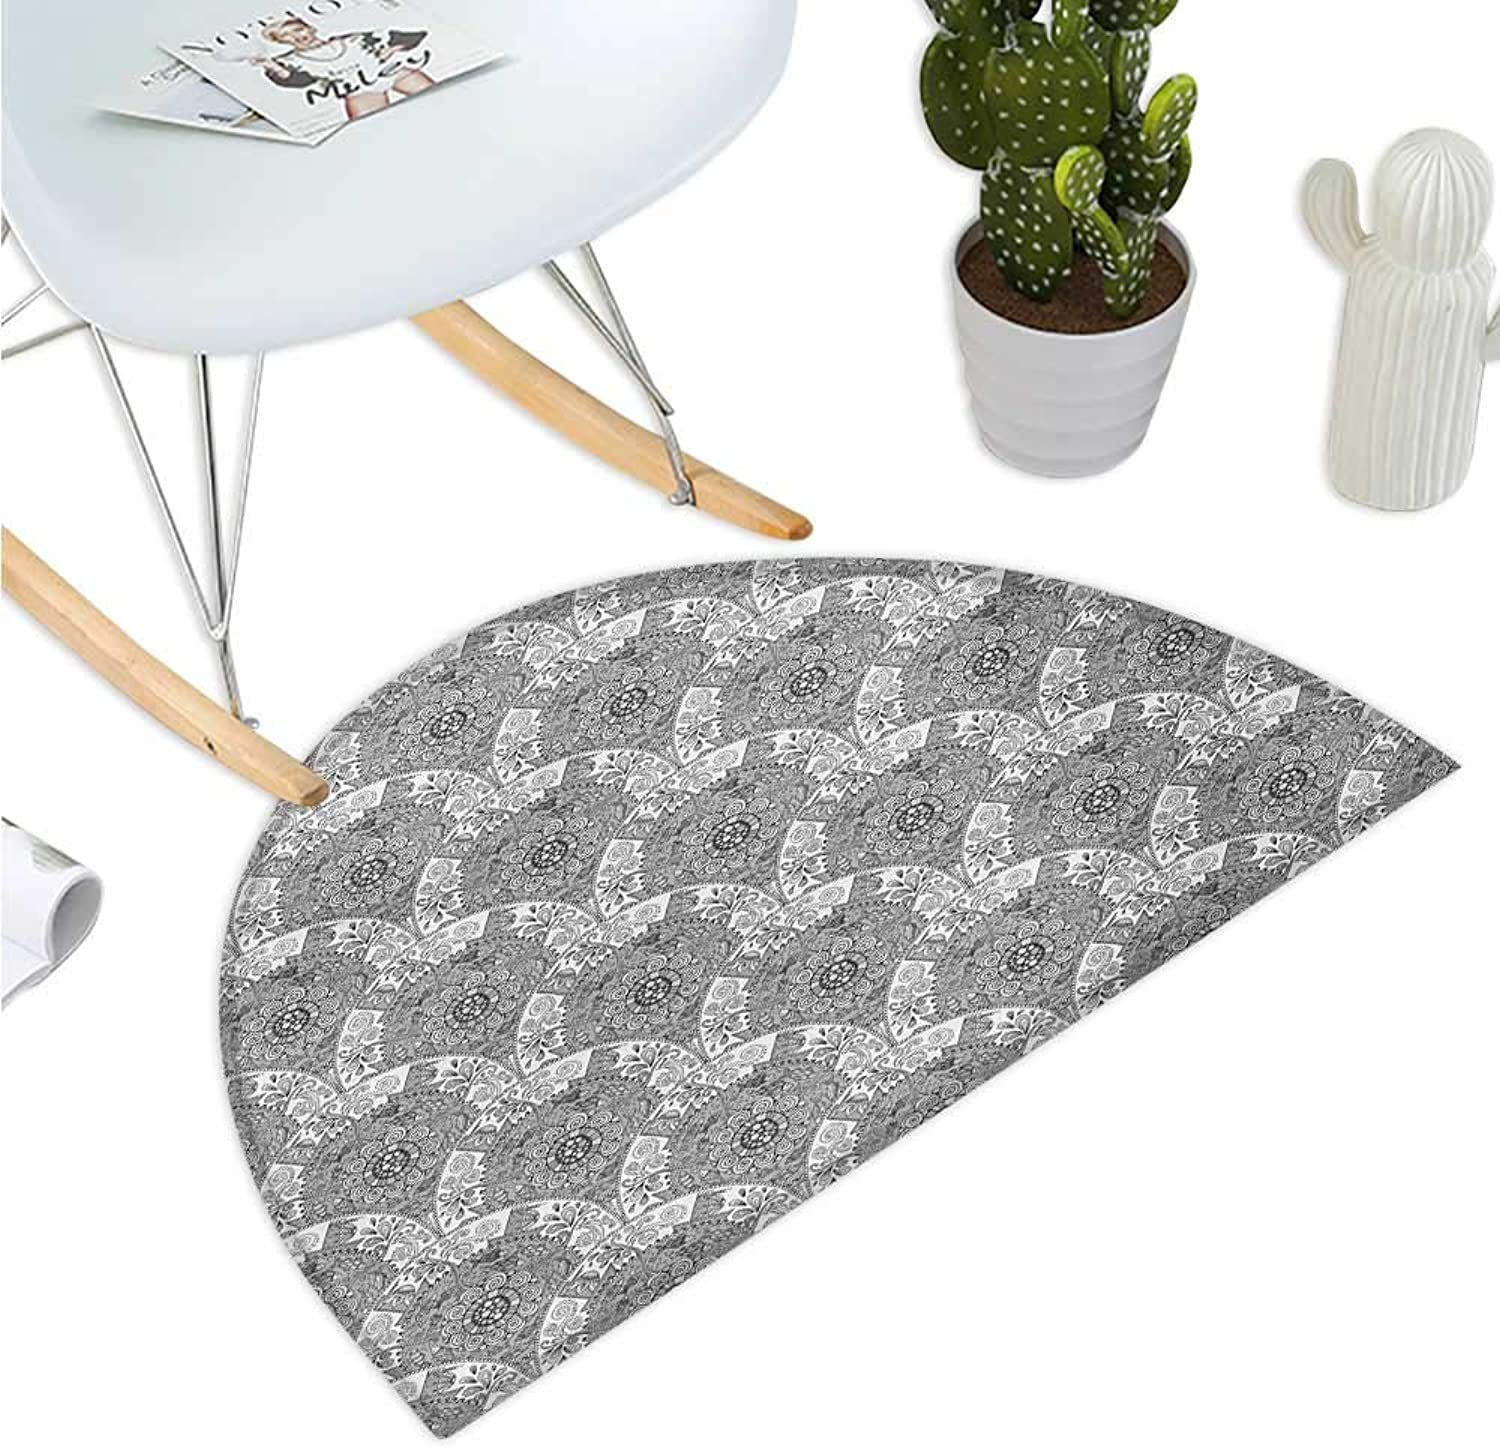 Tribal Semicircular Cushion Greyscale Ethnic Sketch Mandala Design with Boat and School of Fish in The Wind Entry Door Mat H 35.4  xD 53.1  Pale Grey White